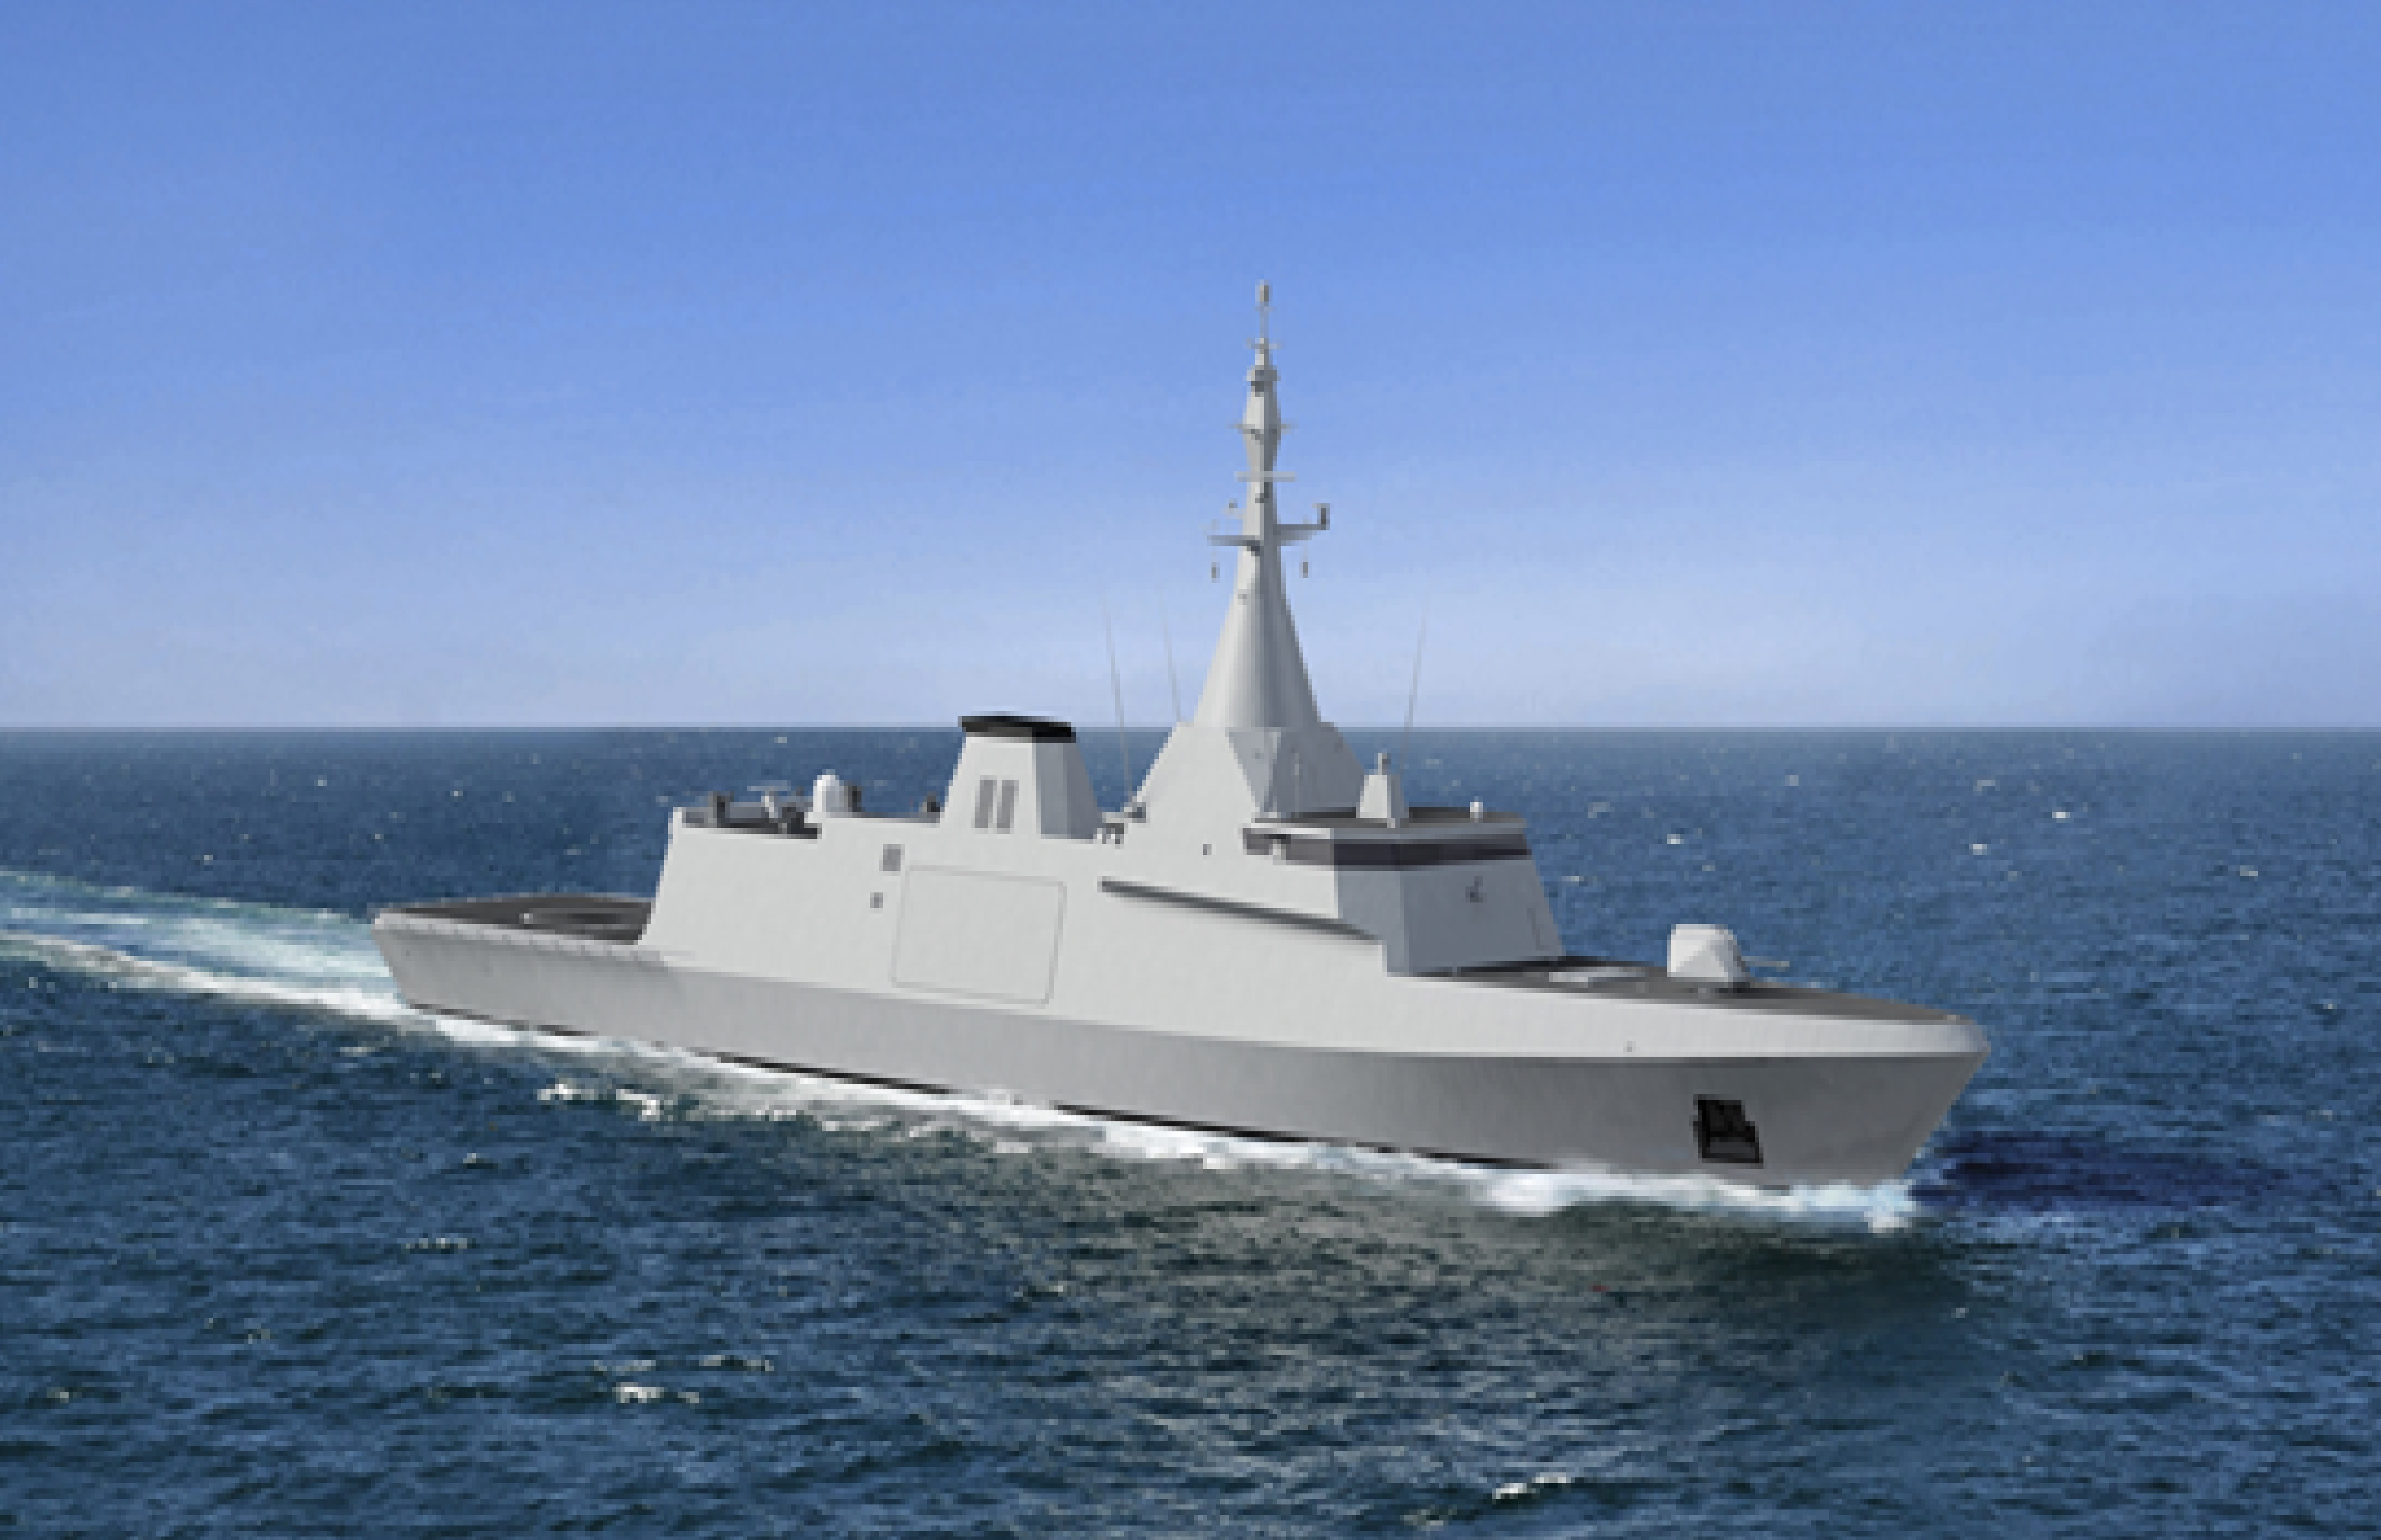 The Gowind 255 corvette [frigate] chosen by the Egyptian navy is armed with air-defence, land-strike, and ship-to-ship missiles, and will be produced in Alexandria.